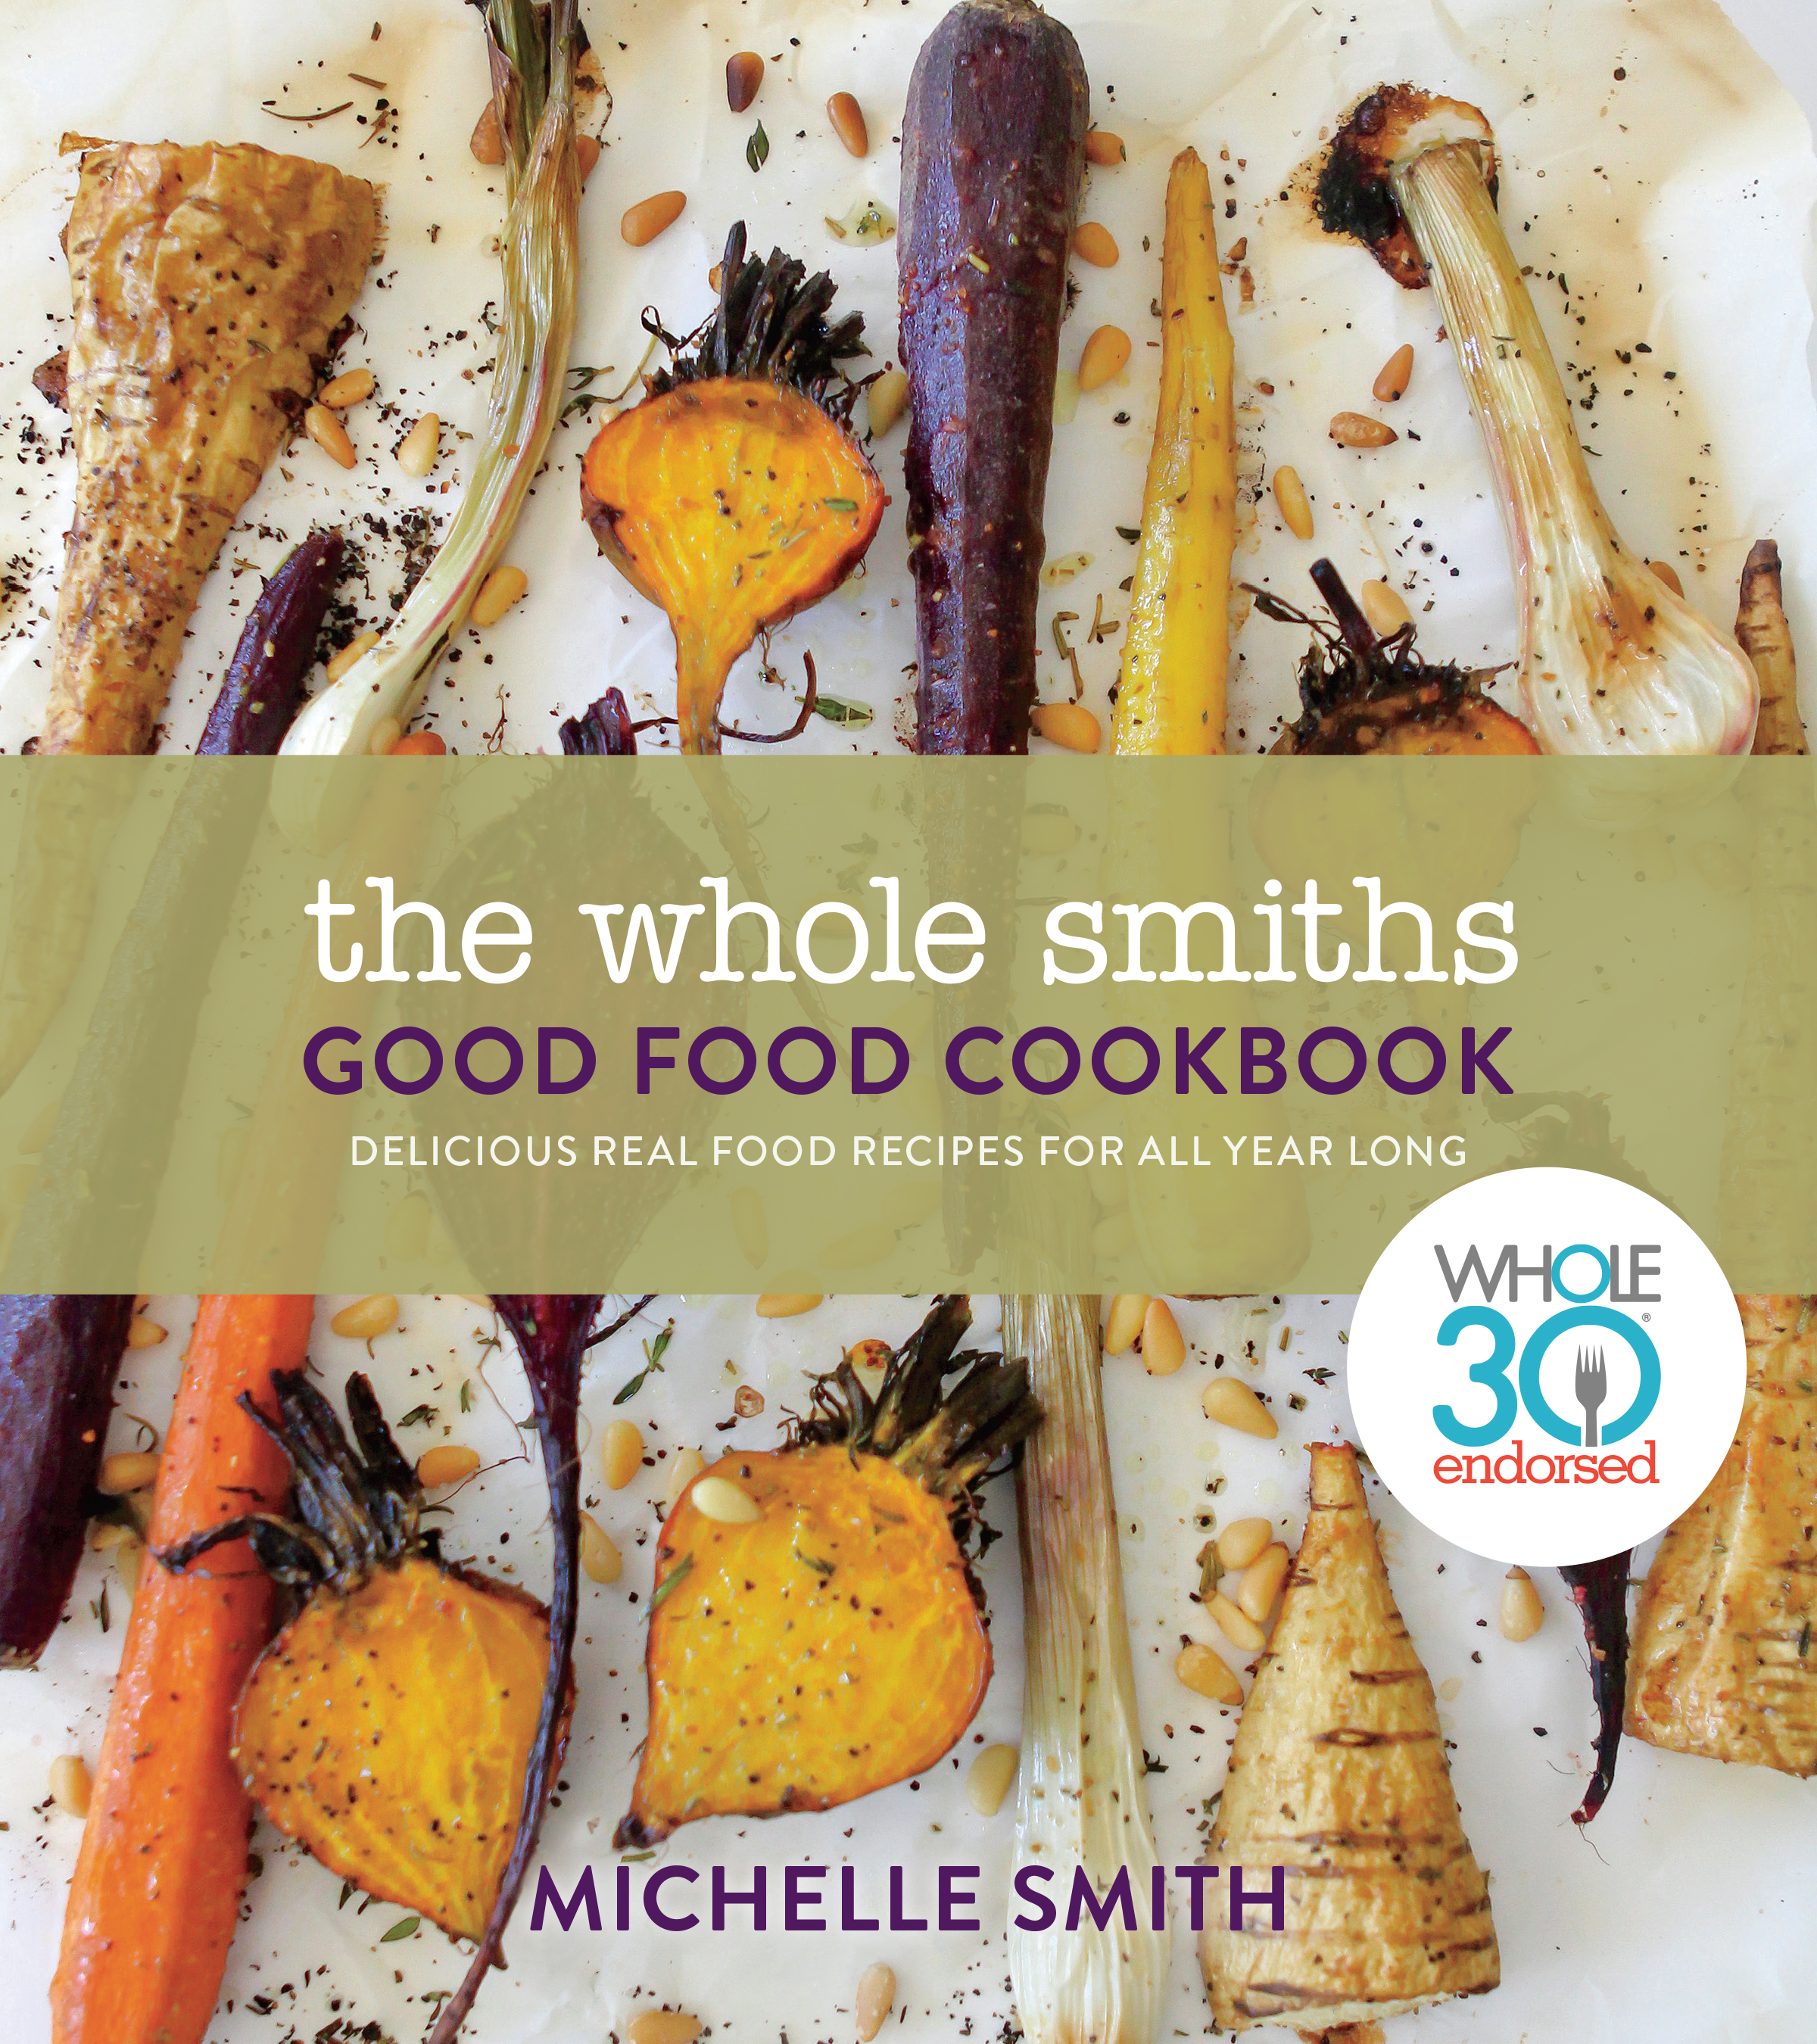 The Whole Smiths! Good Food Cookbook